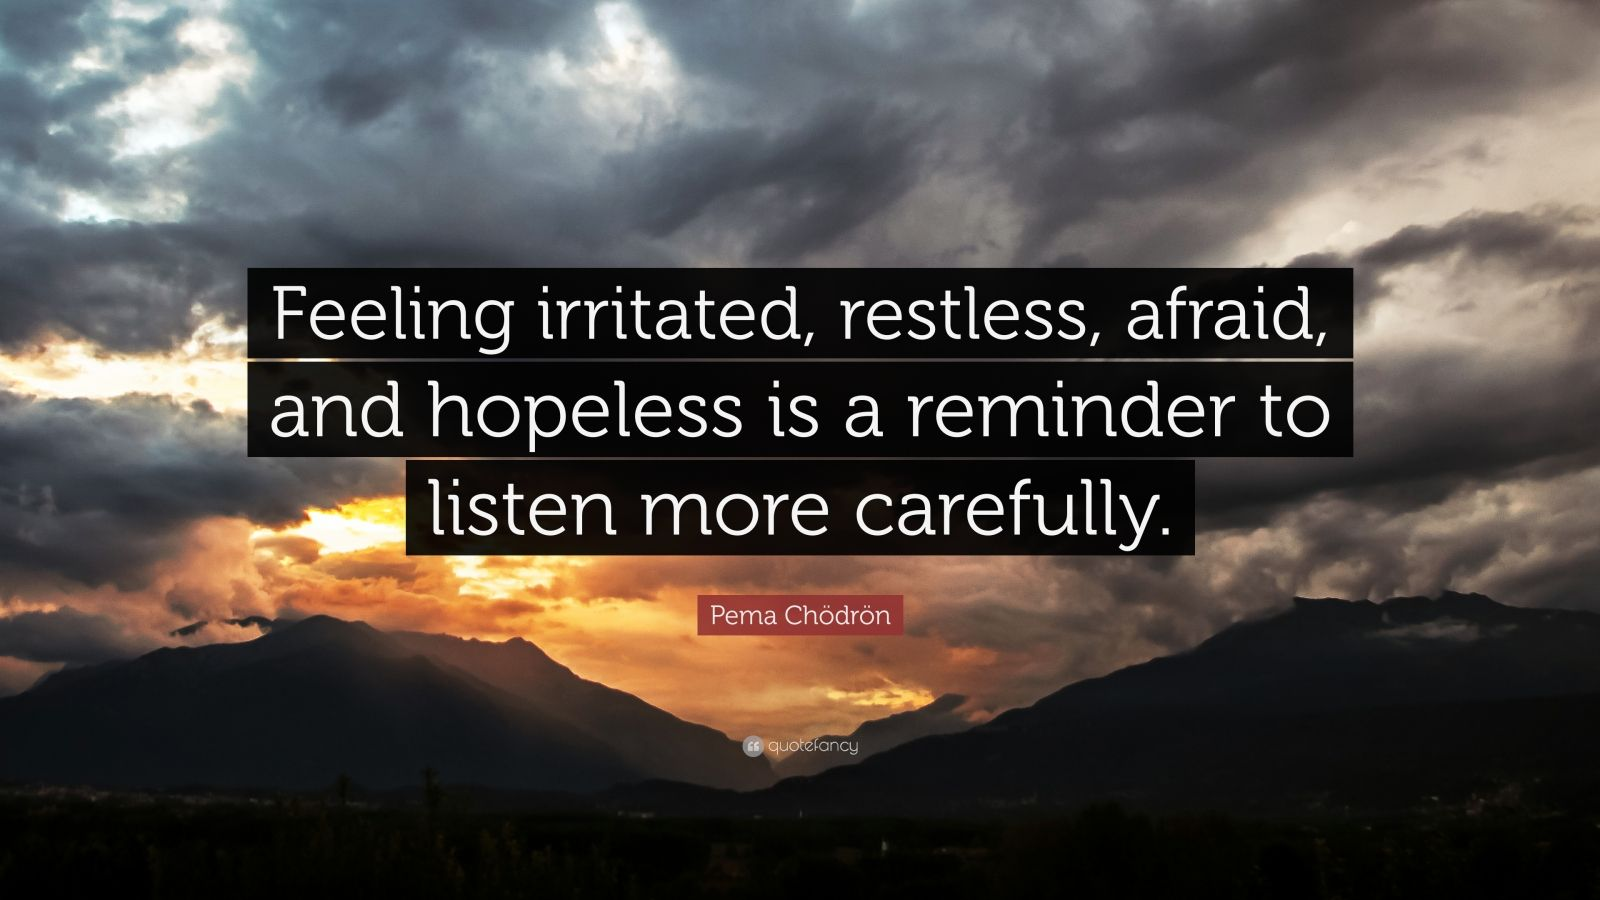 """Pema Chödrön Quote: """"Feeling irritated, restless, afraid, and hopeless is a reminder to listen more carefully."""""""